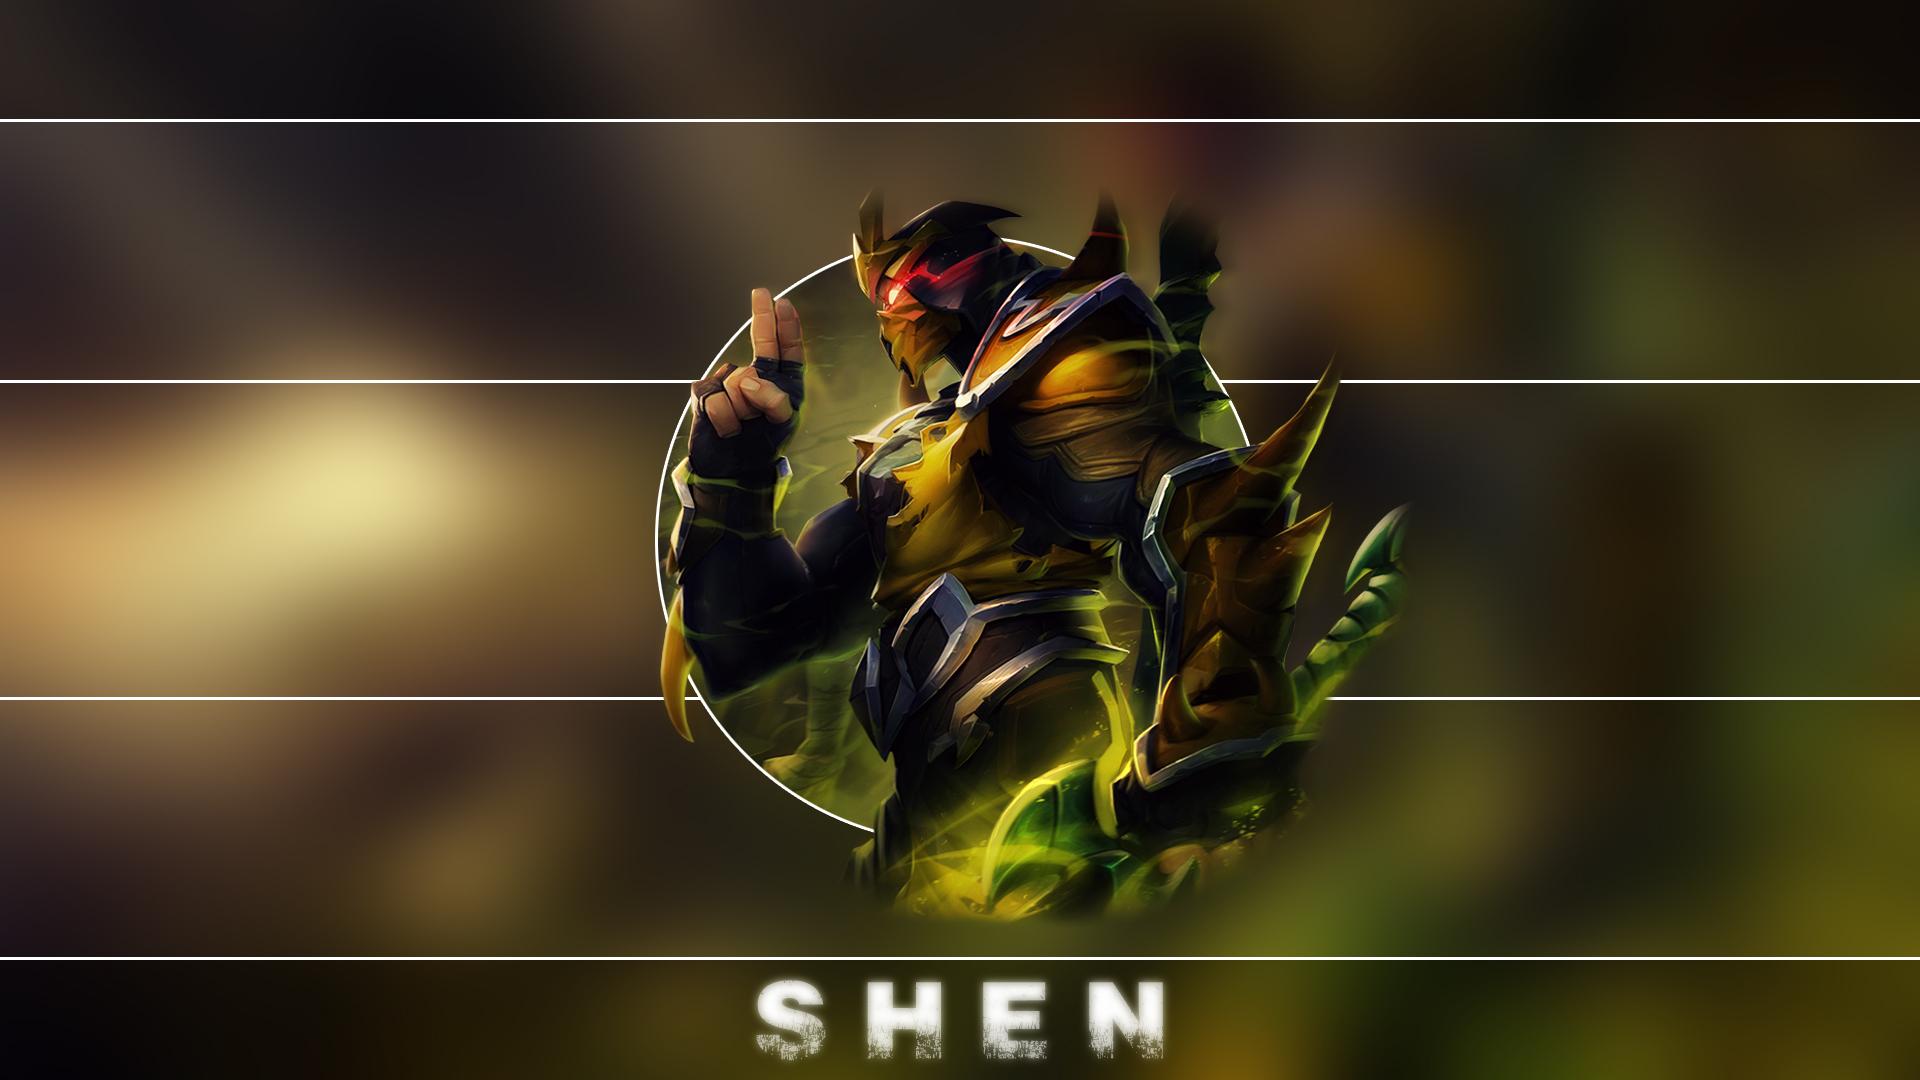 League Of Legends Wallpapers HD 1920x1080 Yellow Jacket Shen